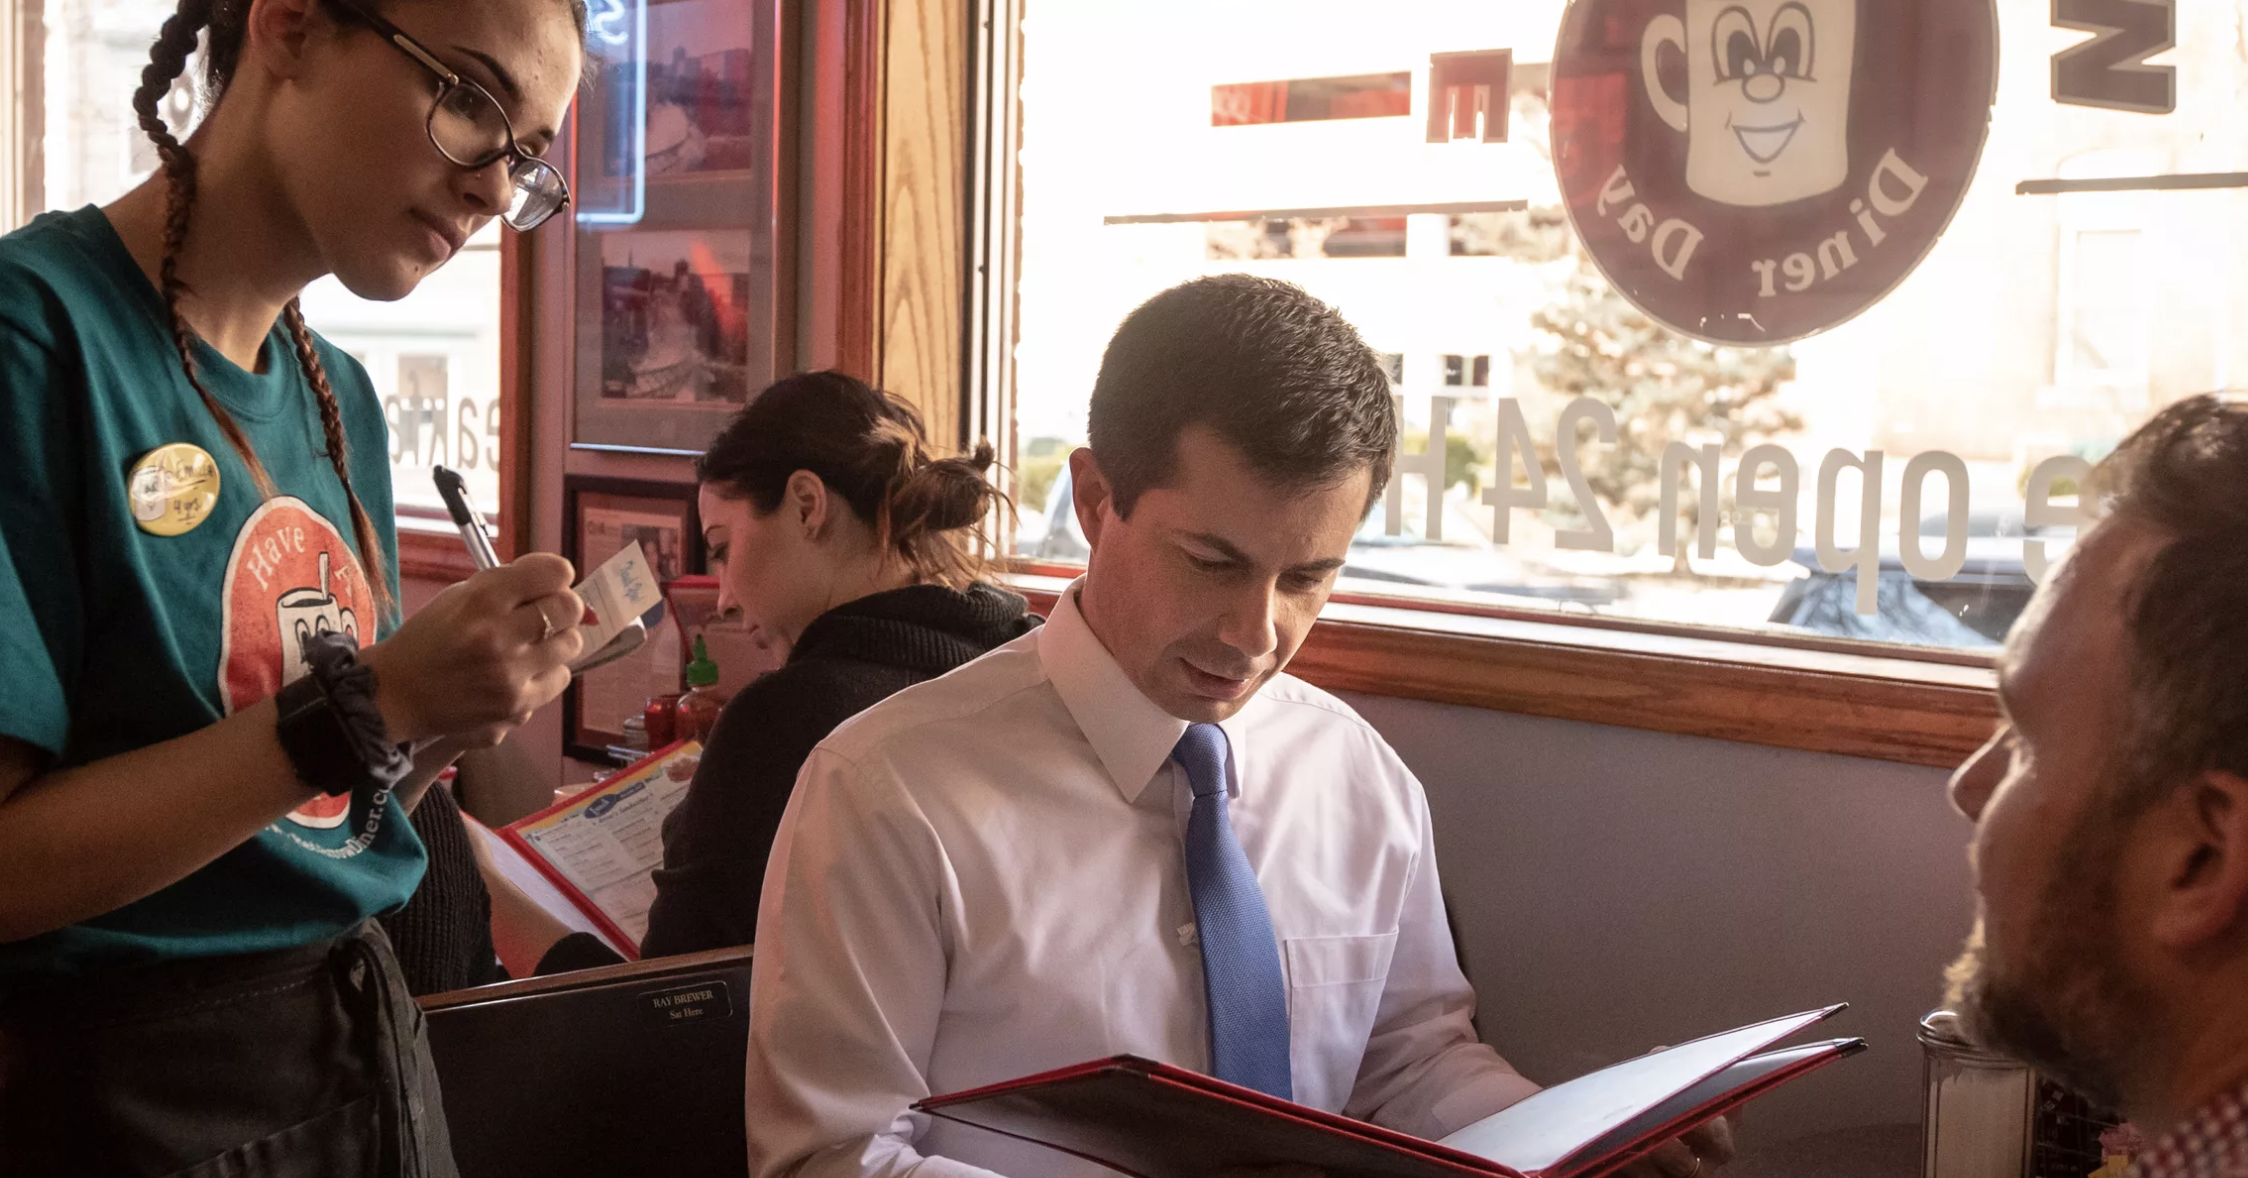 The Diner That Every Future President Must Visit